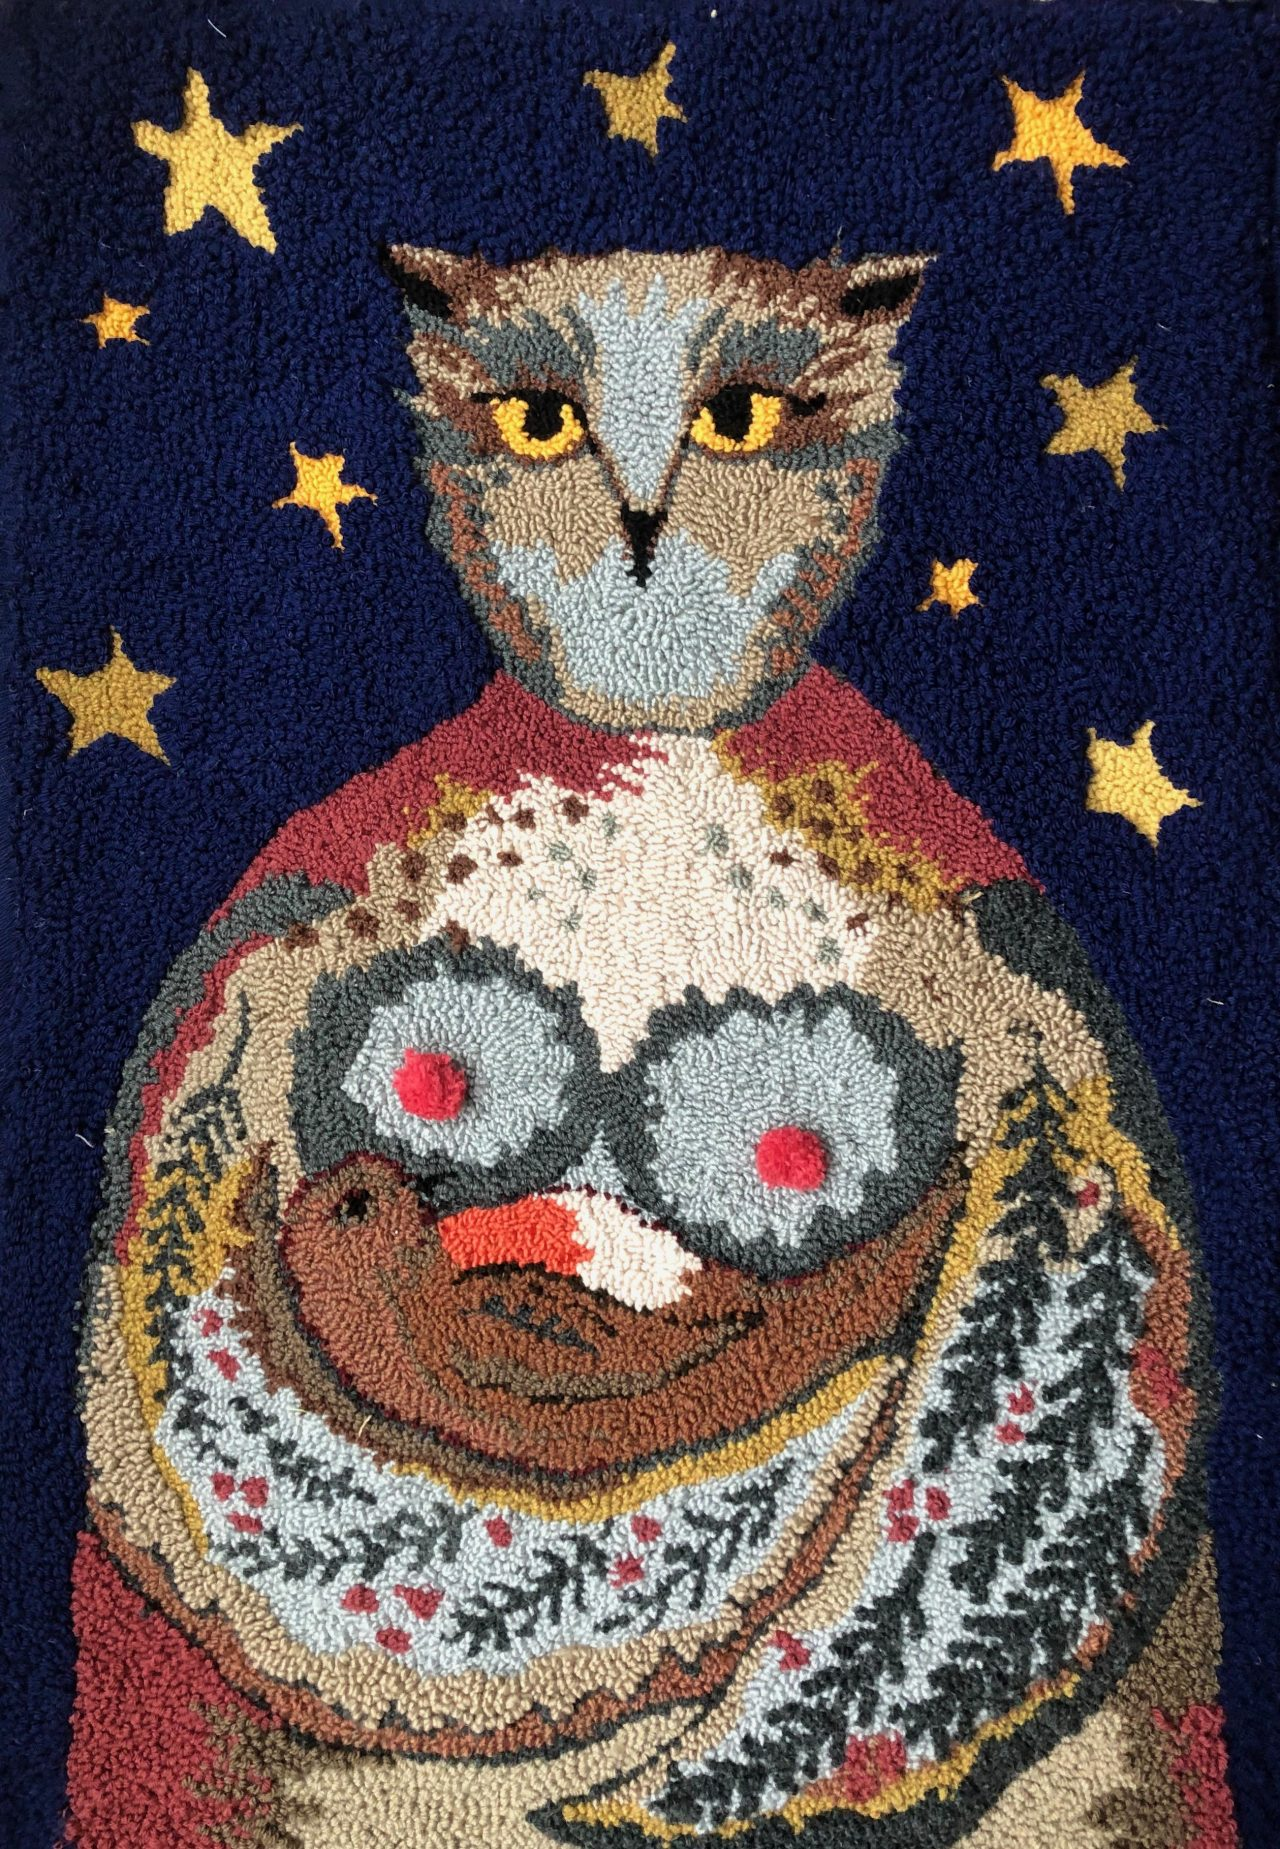 Textile art of an owl by Selby Hurst Inglefield with a starry night background